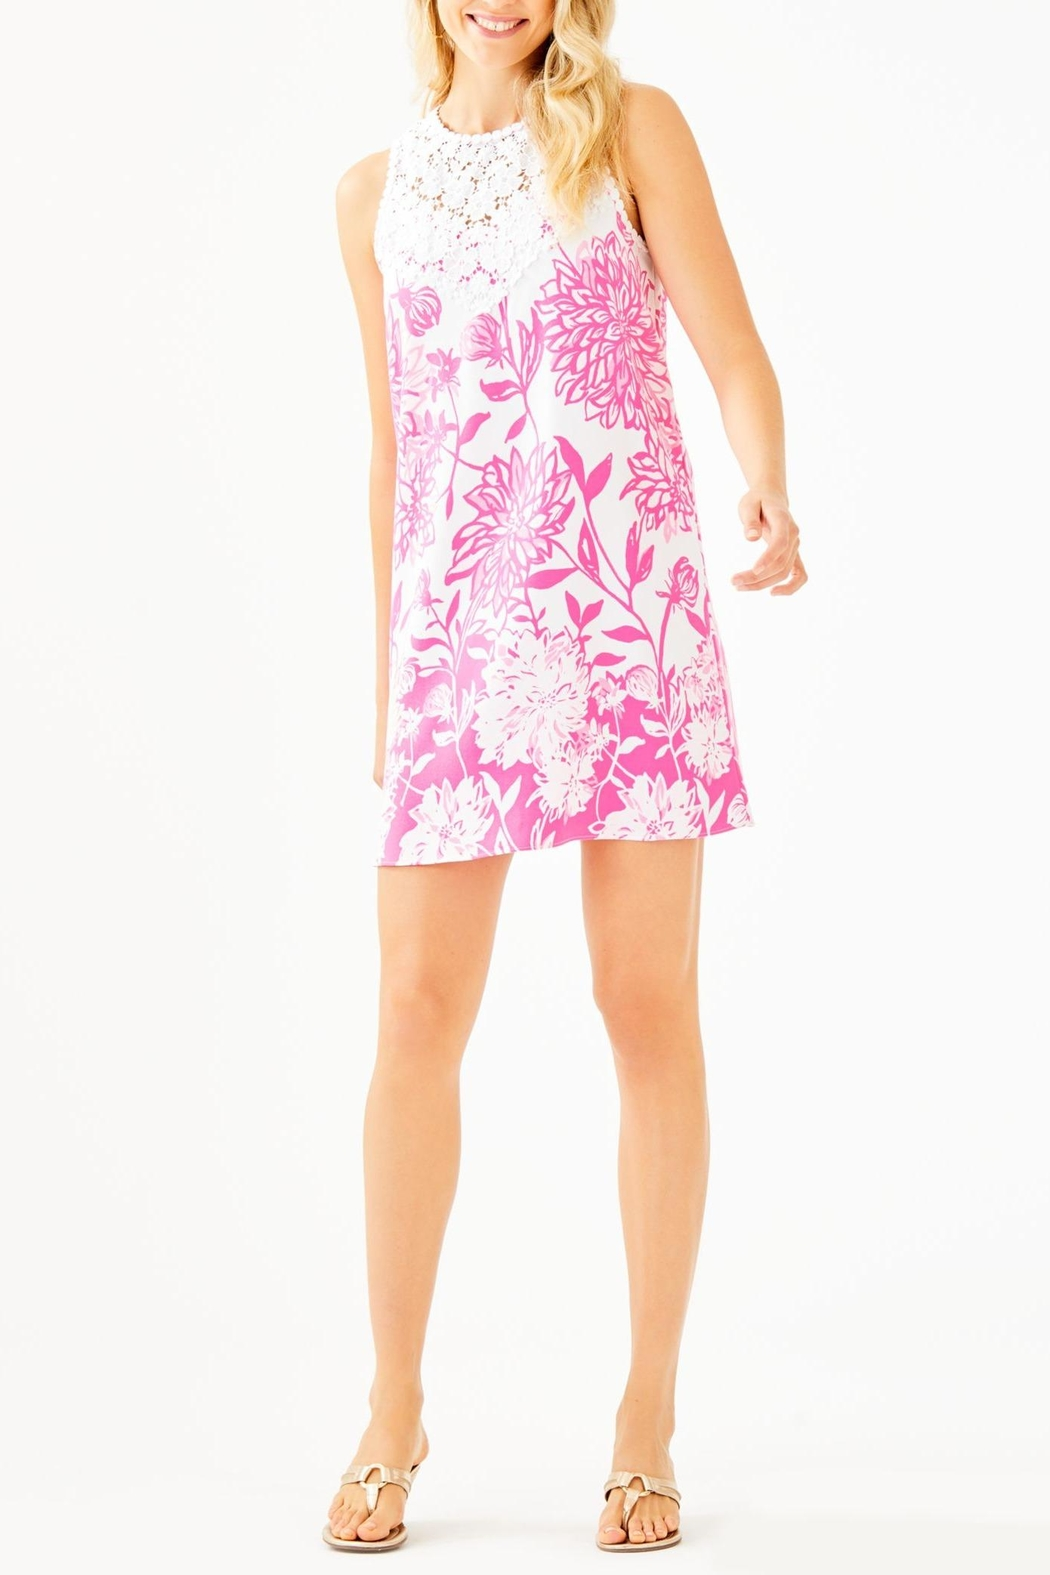 Lilly Pulitzer Nala Soft-Shift Dress - Back Cropped Image